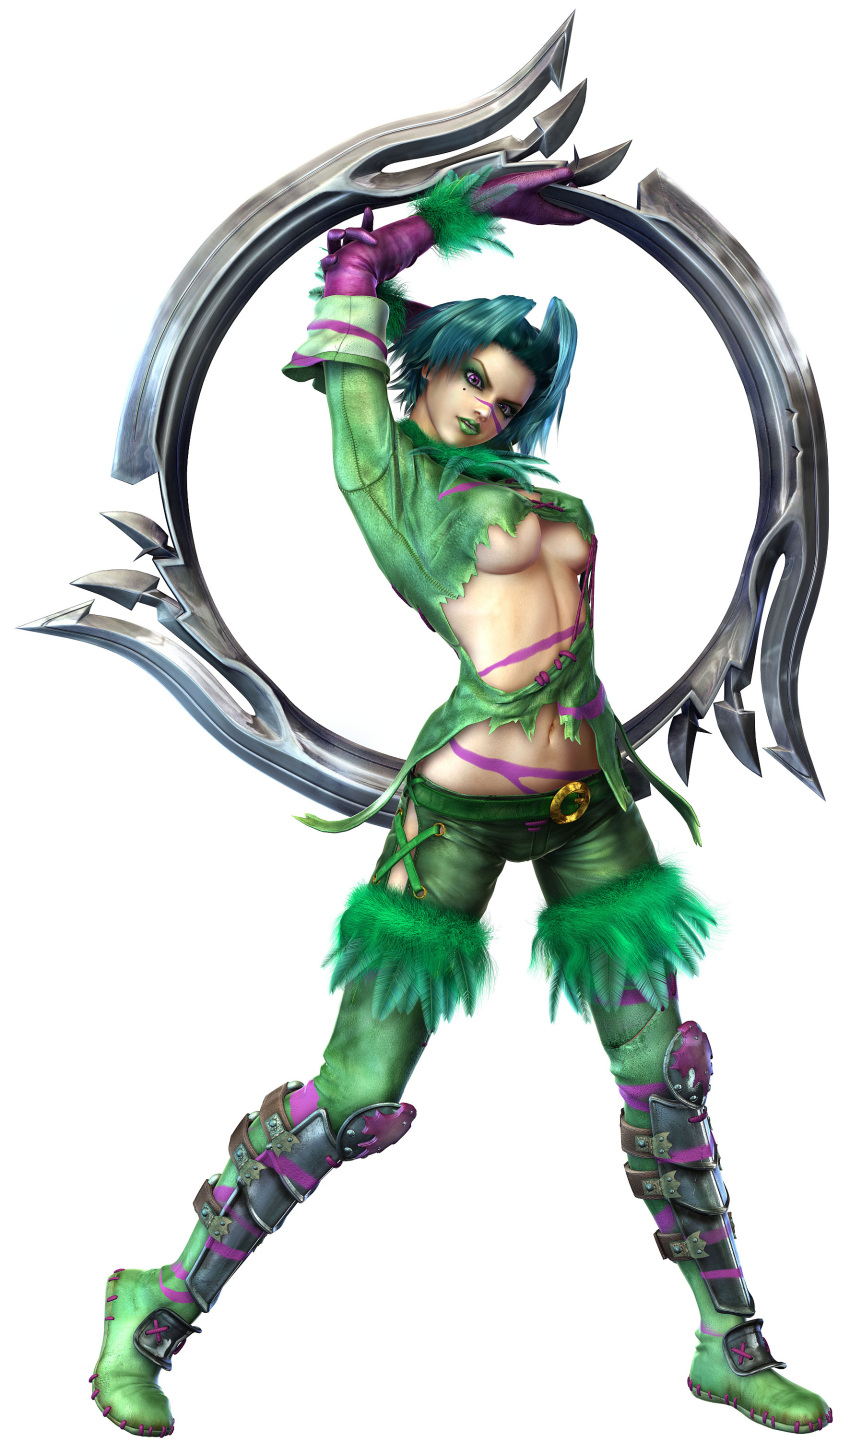 1girl 3d absurdres arms_up bangs belt blue_hair bodypaint boots breasts breasts_apart chakram cross-laced_clothes elbow_gloves eyelashes eyeshadow facepaint facial_mark feathers full_body fur_trim gloves green_boots green_lipstick head_tilt highres holding holding_arm holding_weapon huge_weapon kawano_takuji large_breasts leather leather_pants legs_apart lipstick looking_at_viewer makeup midriff mole mole_under_eye navel no_bra pants parted_lips purple_gloves revealing_clothes shin_guards short_hair simple_background sleeves_folded_up solo soul_calibur soulcalibur_iii standing thigh-highs thigh_boots tira_(soulcalibur) torn_clothes under_boob violet_eyes weapon white_background